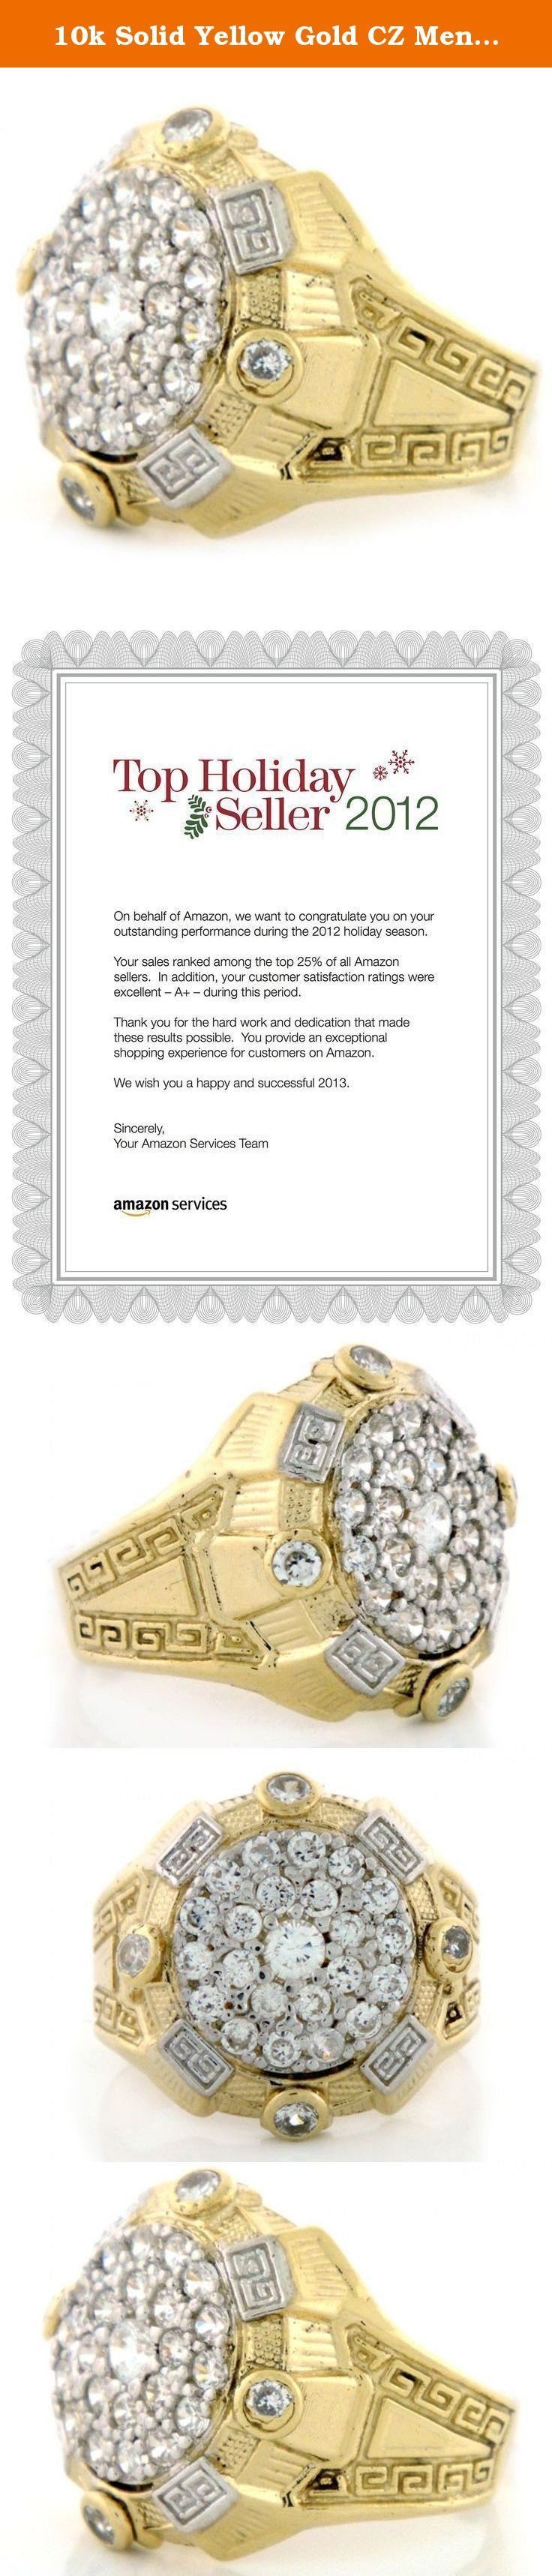 10k Solid Yellow Gold CZ Mens Cluster Roman Design Ring. 10k Solid Yellow Gold CZ Mens Cluster Roman Design Ring - Jewelry Liquidation Number: R0T1891ZW0-1300 - Size 13.00.